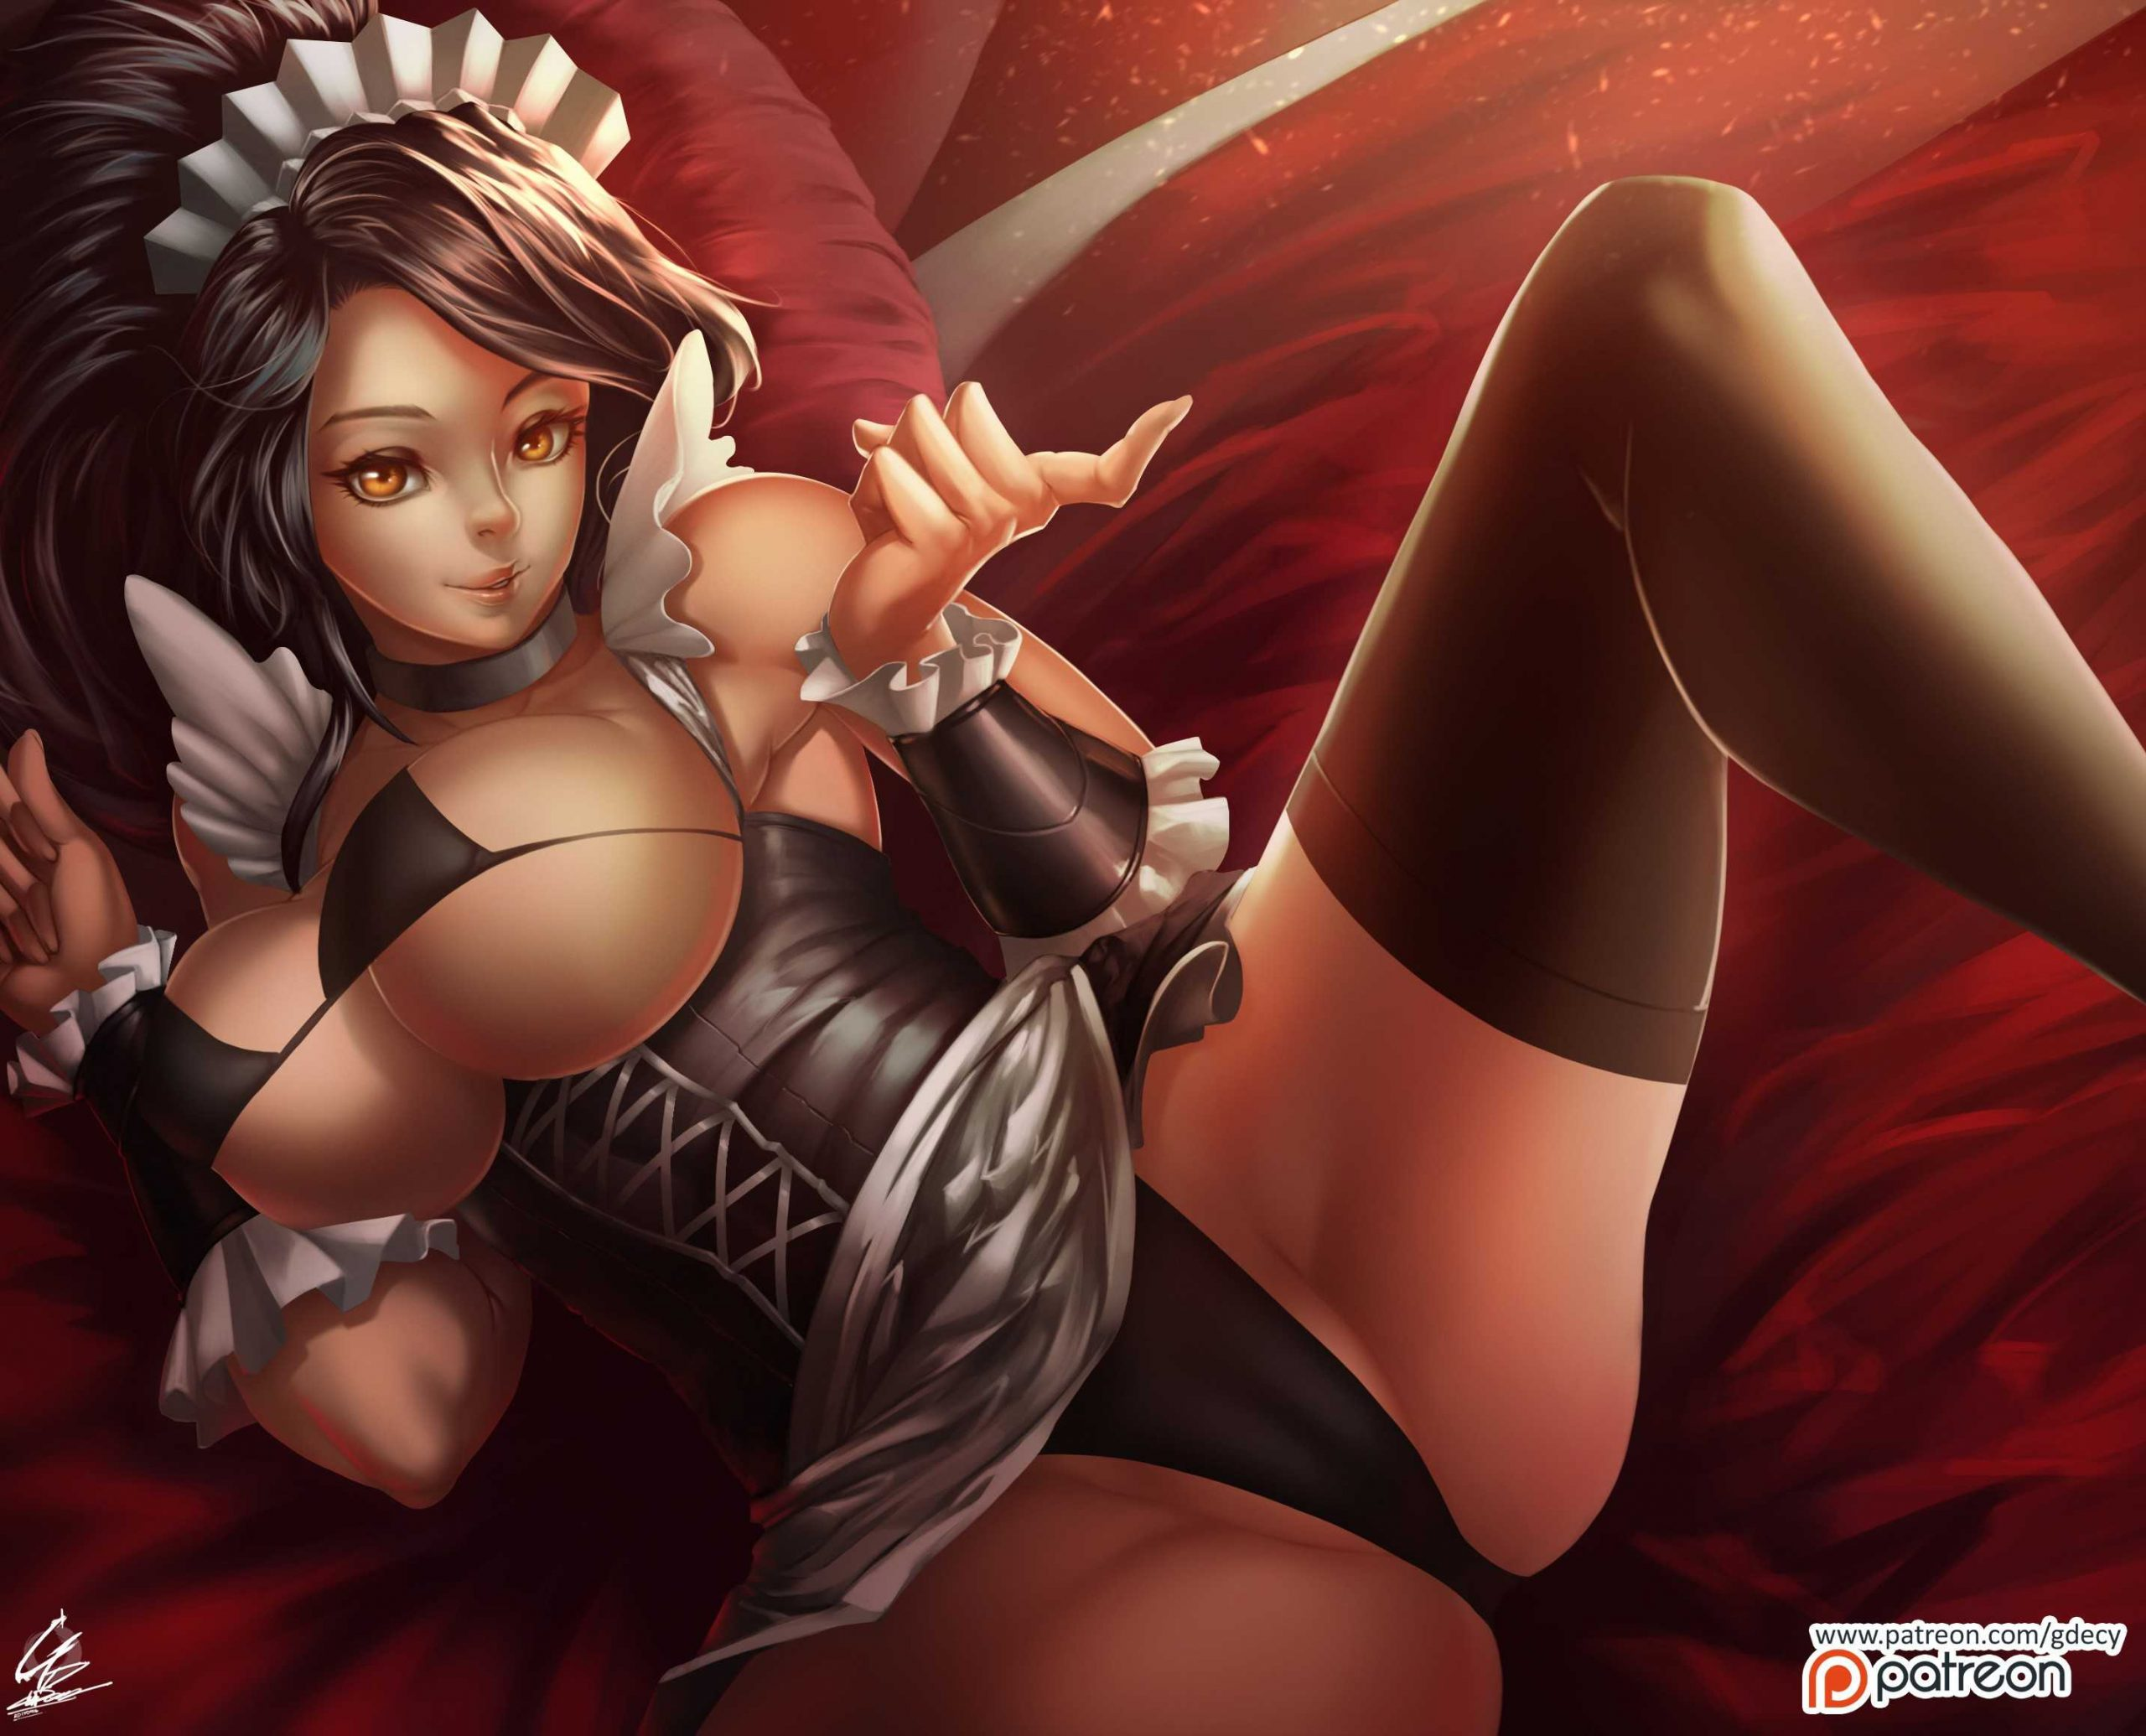 French Maid Nidalee - League Of Legends